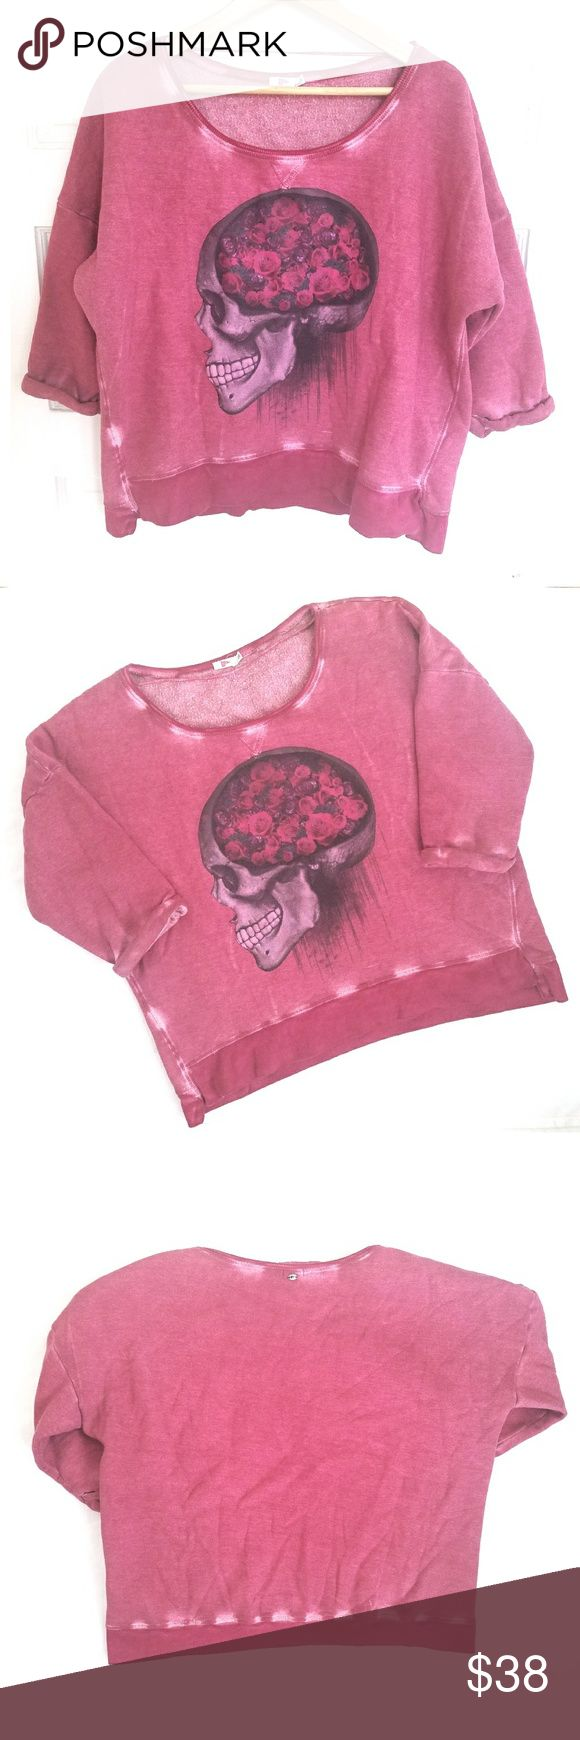 Roses Skull Boxy Sweatshirt Reddish pink sweatshirt by Pool. Features skull on front with roses for brains and white distressing. 3/4 sleeves sewn.  Very thick true sweatshirt material! Size large (grande, made in Brazil), but easily fits an oversized medium or even a small. (Listing as Med-Large.) This is one of my favorite pieces. 🖤 Pool Tops Sweatshirts & Hoodies